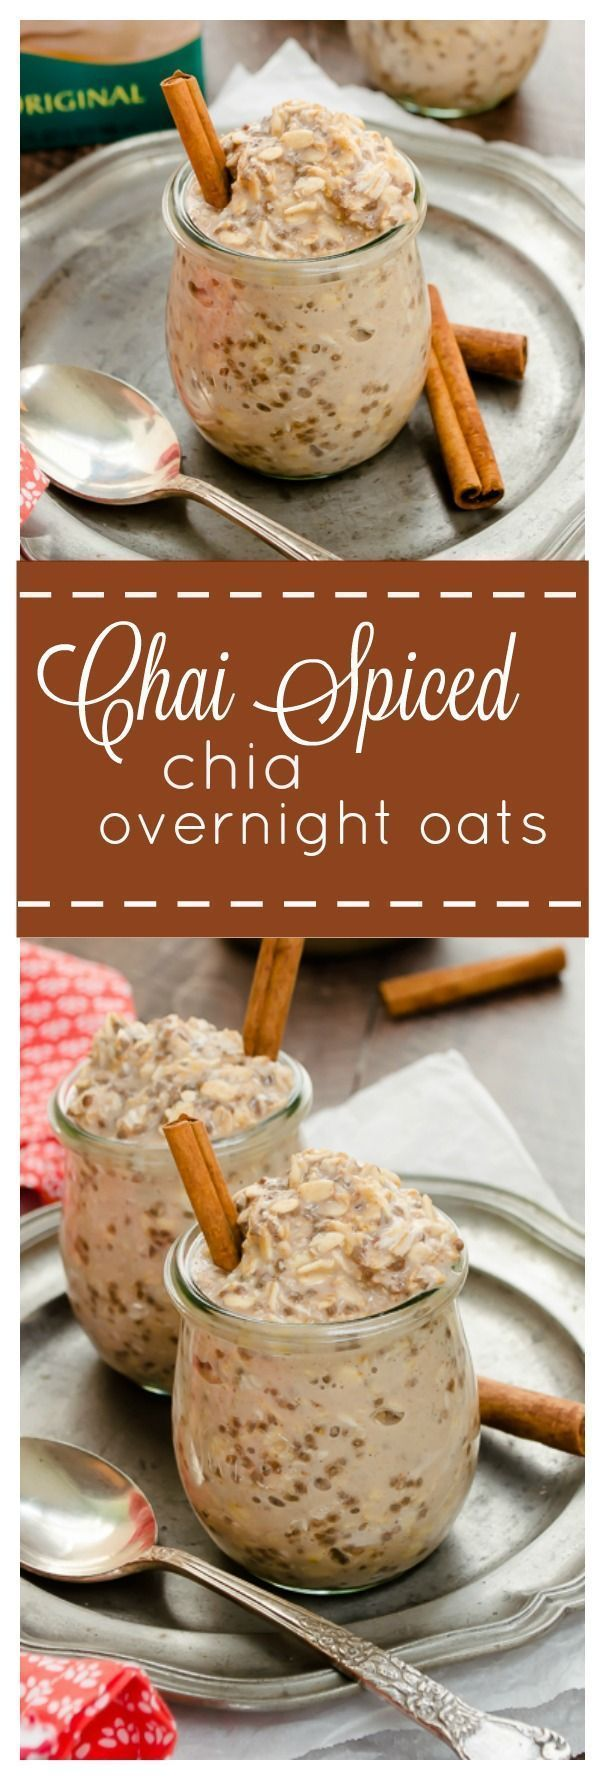 Chai Spiced Chia Overnight Oats are creamy overnight oats with warm chai spices. They're gluten-free and vegan, and are the perfect grab-n-go breakfast! /FlavortheMoment/